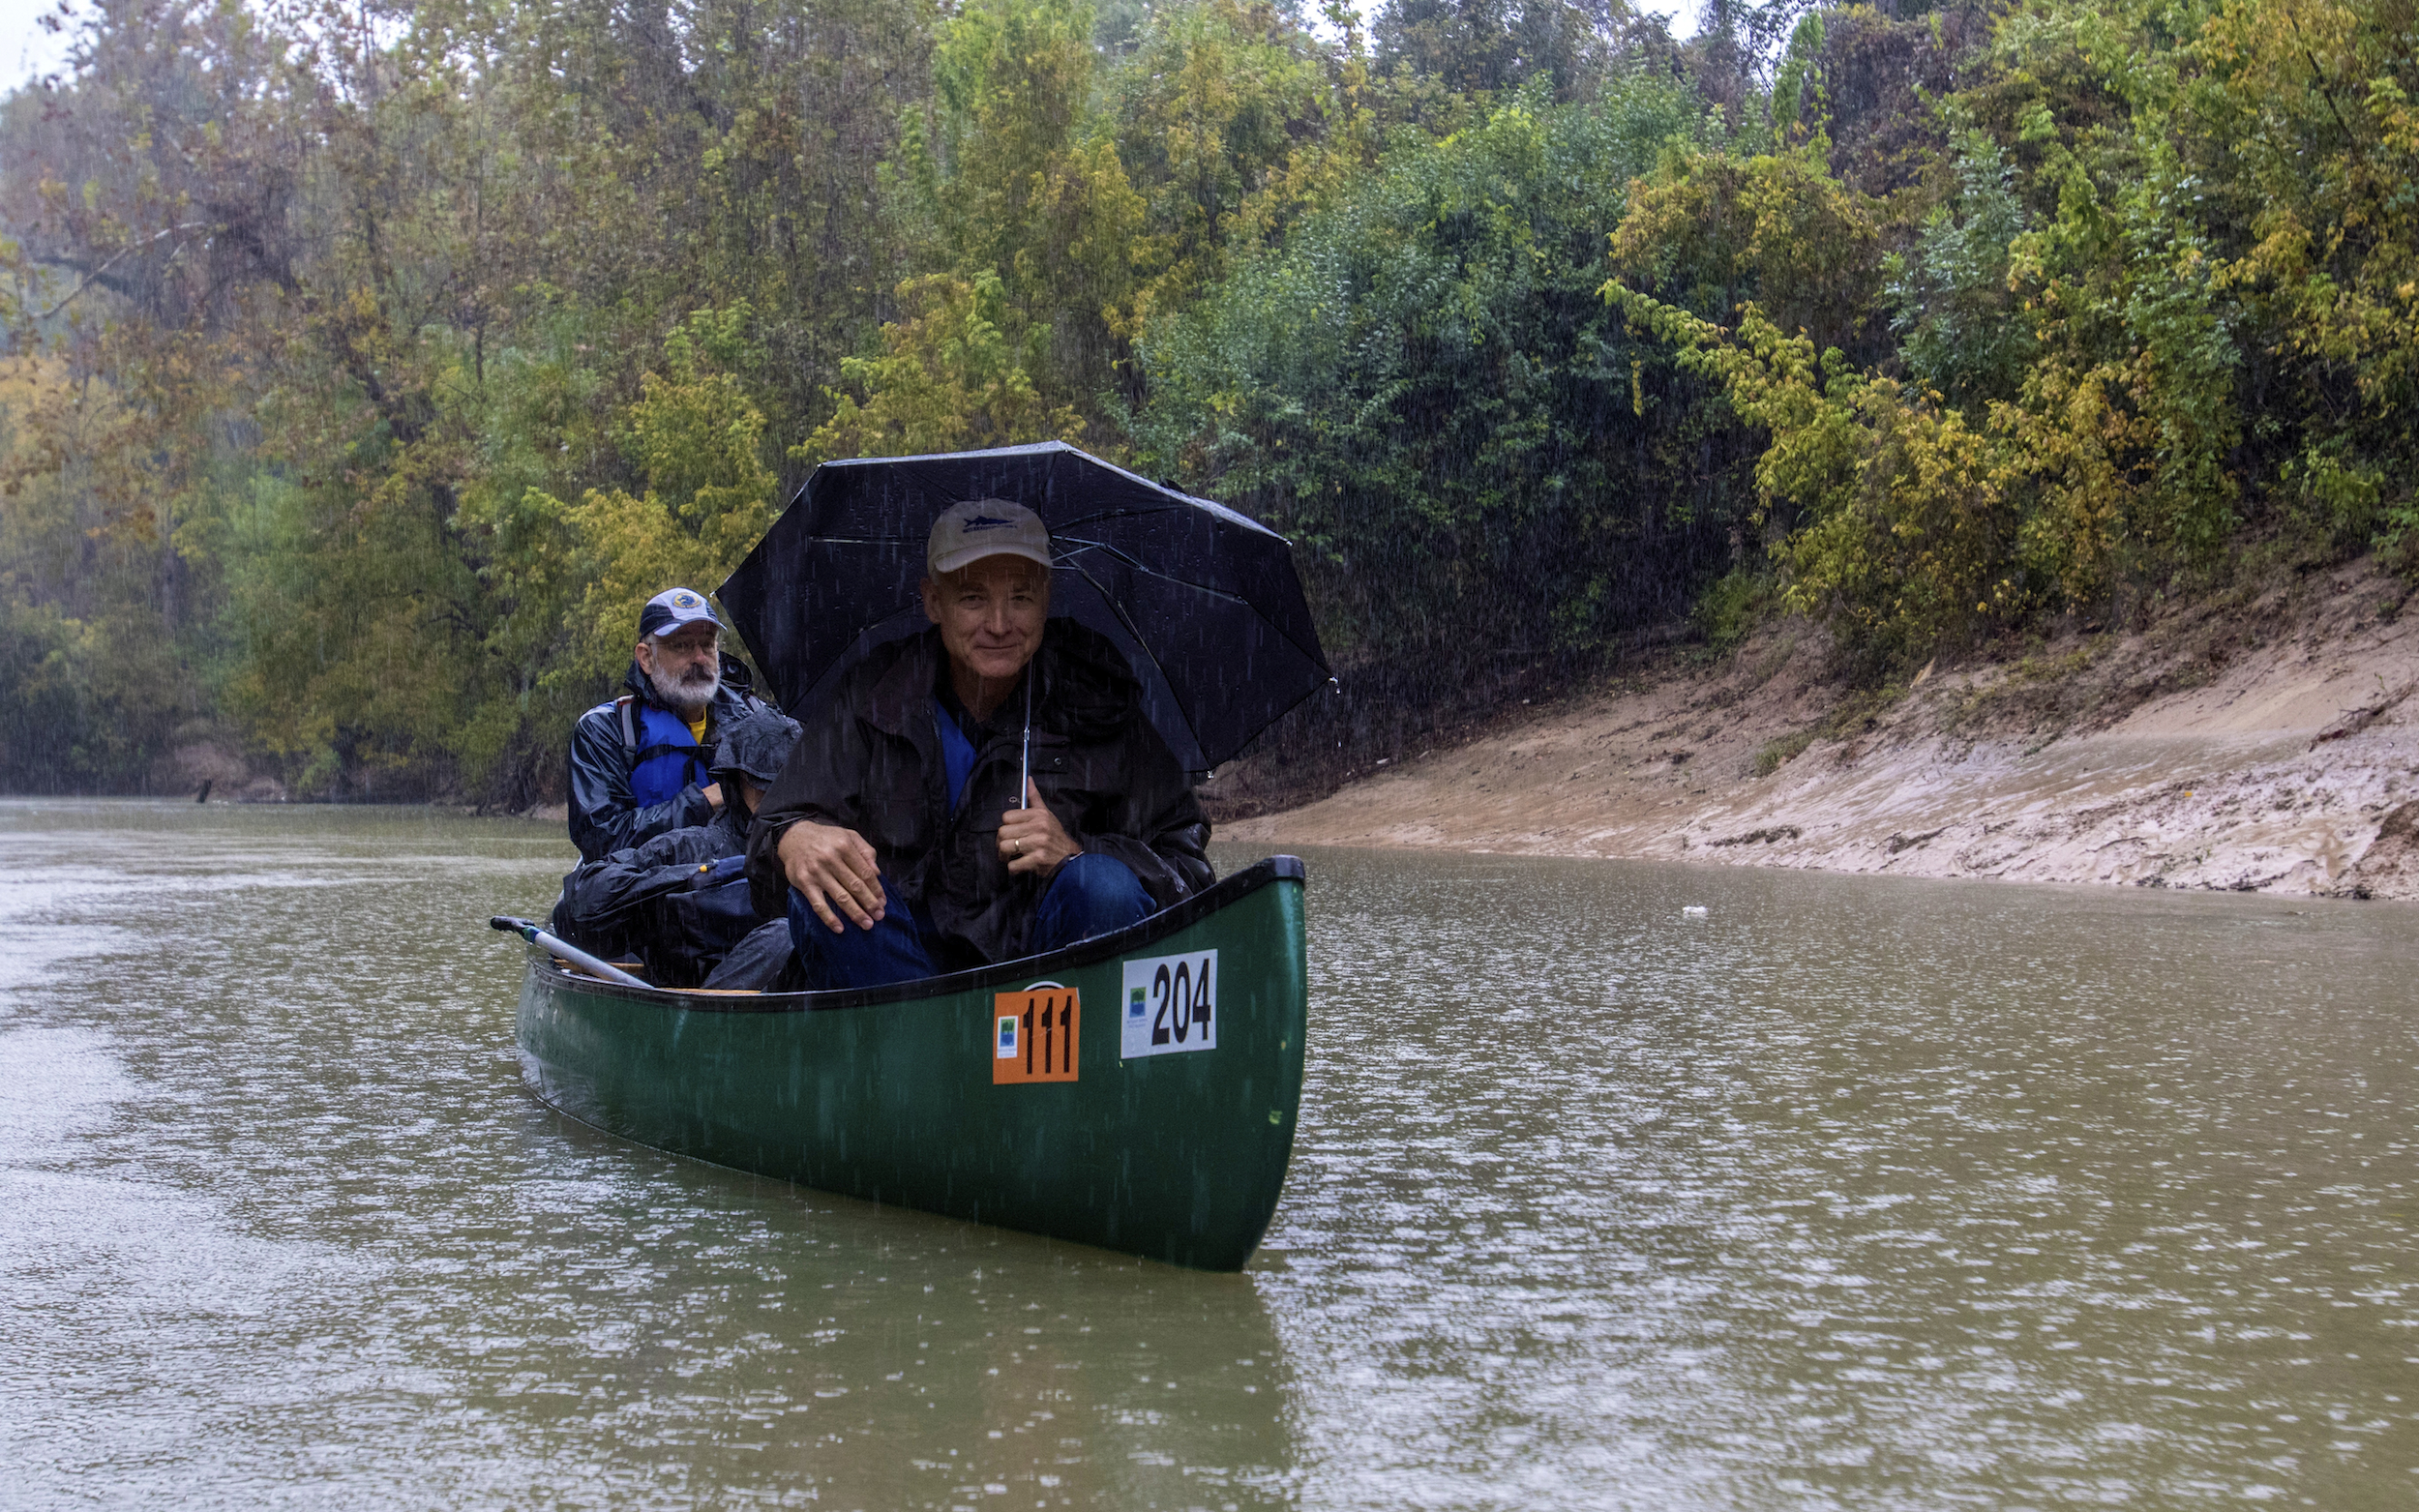 Professor Mathias Kondolf on Buffalo Bayou, Friday, Nov. 21, 2014. Photo by Jim Olive.